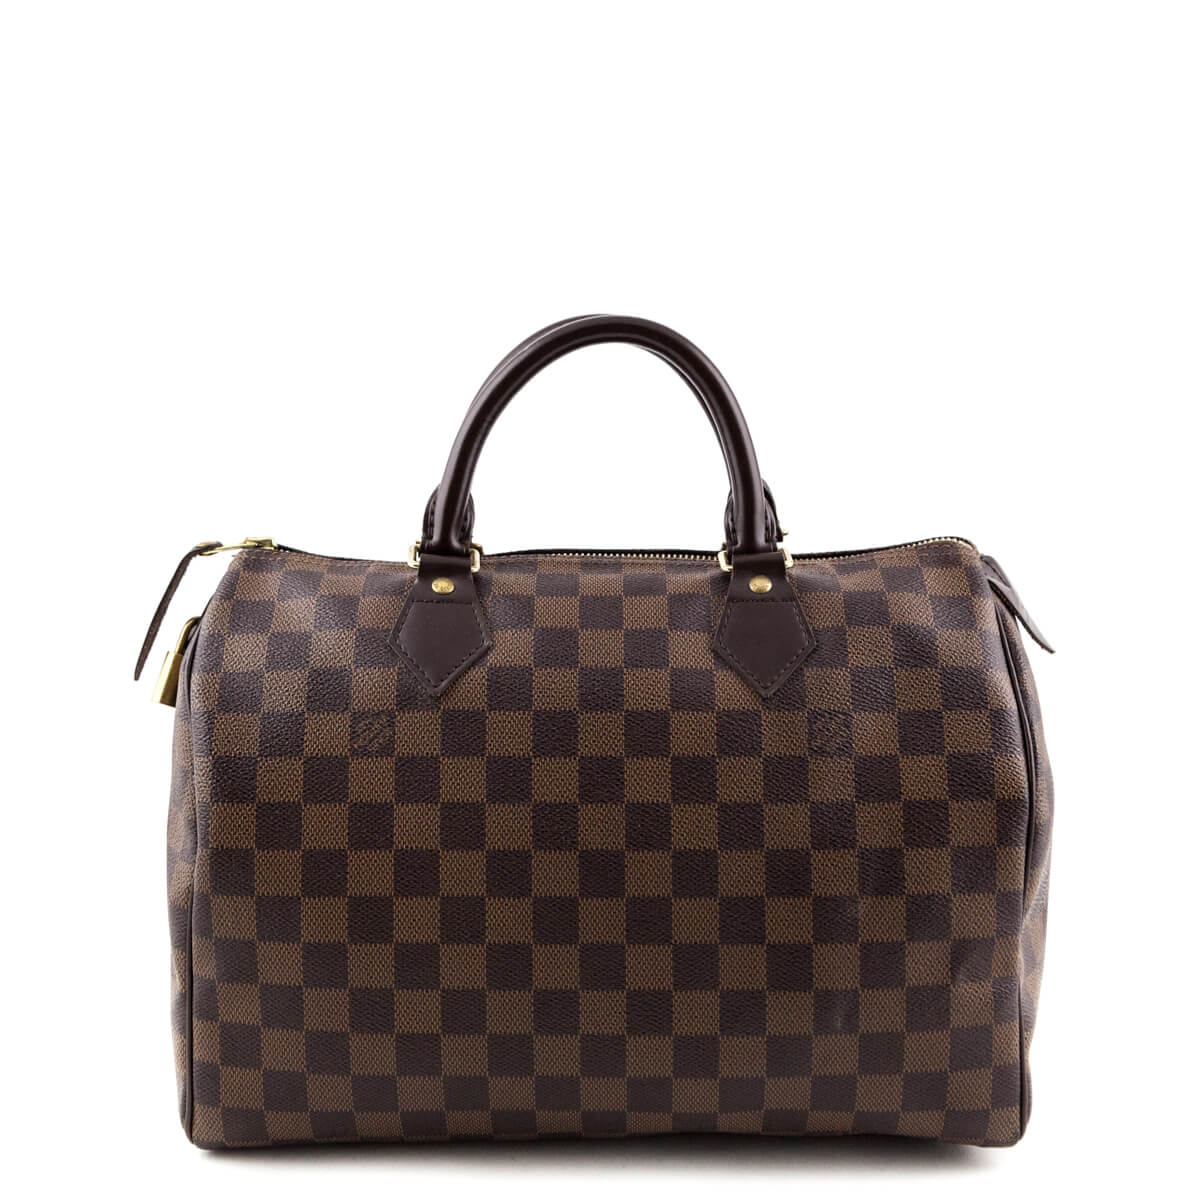 ... Louis Vuitton Damier Ebene Speedy 30 - LOVE that BAG - Preowned  Authentic Designer Handbags ... 8f5db30e9e